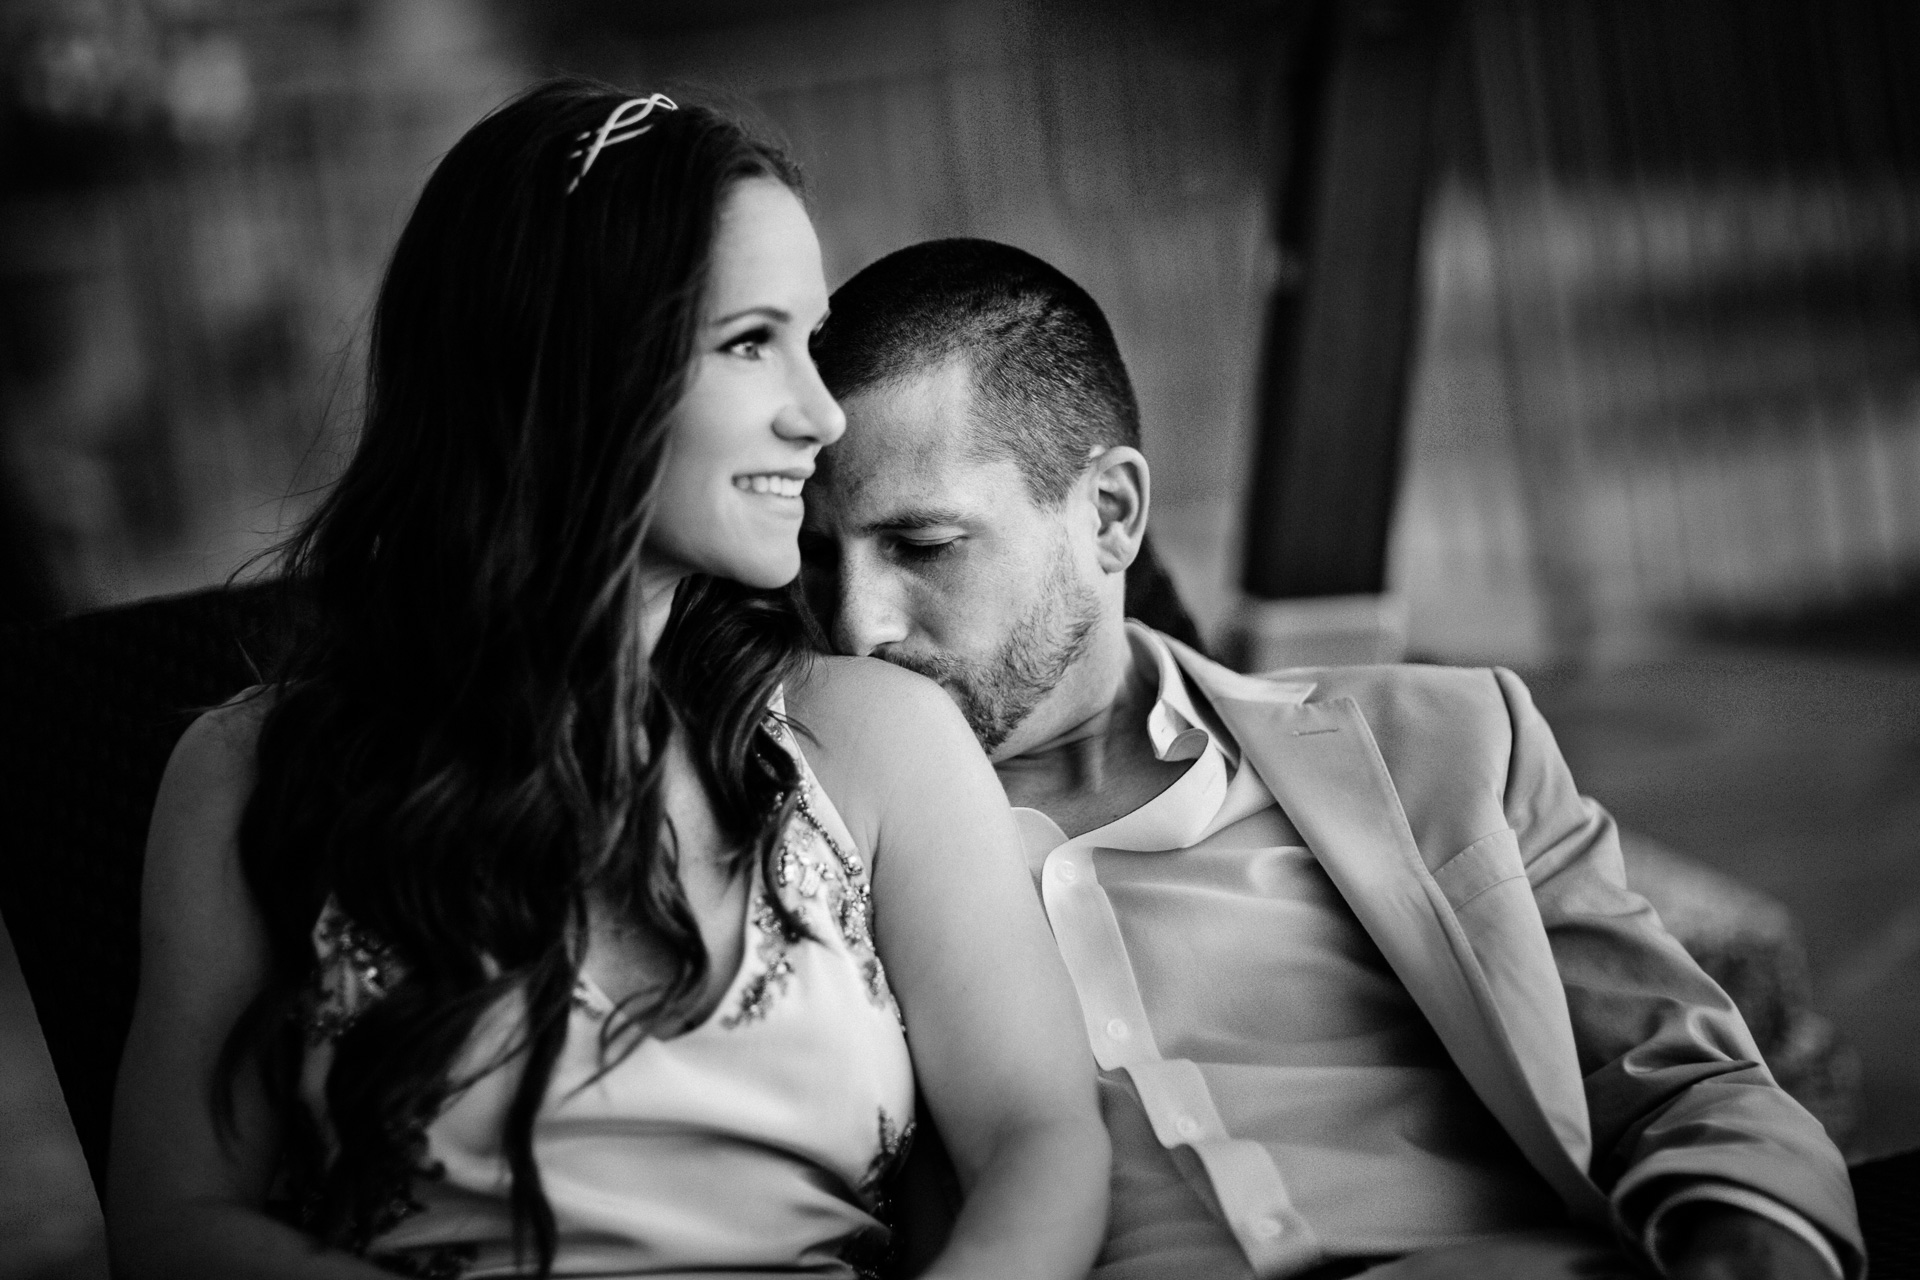 Casali di Casole Wedding Portrait | Siena - Tuscany - Italy | the romantic atmosphere of the day,